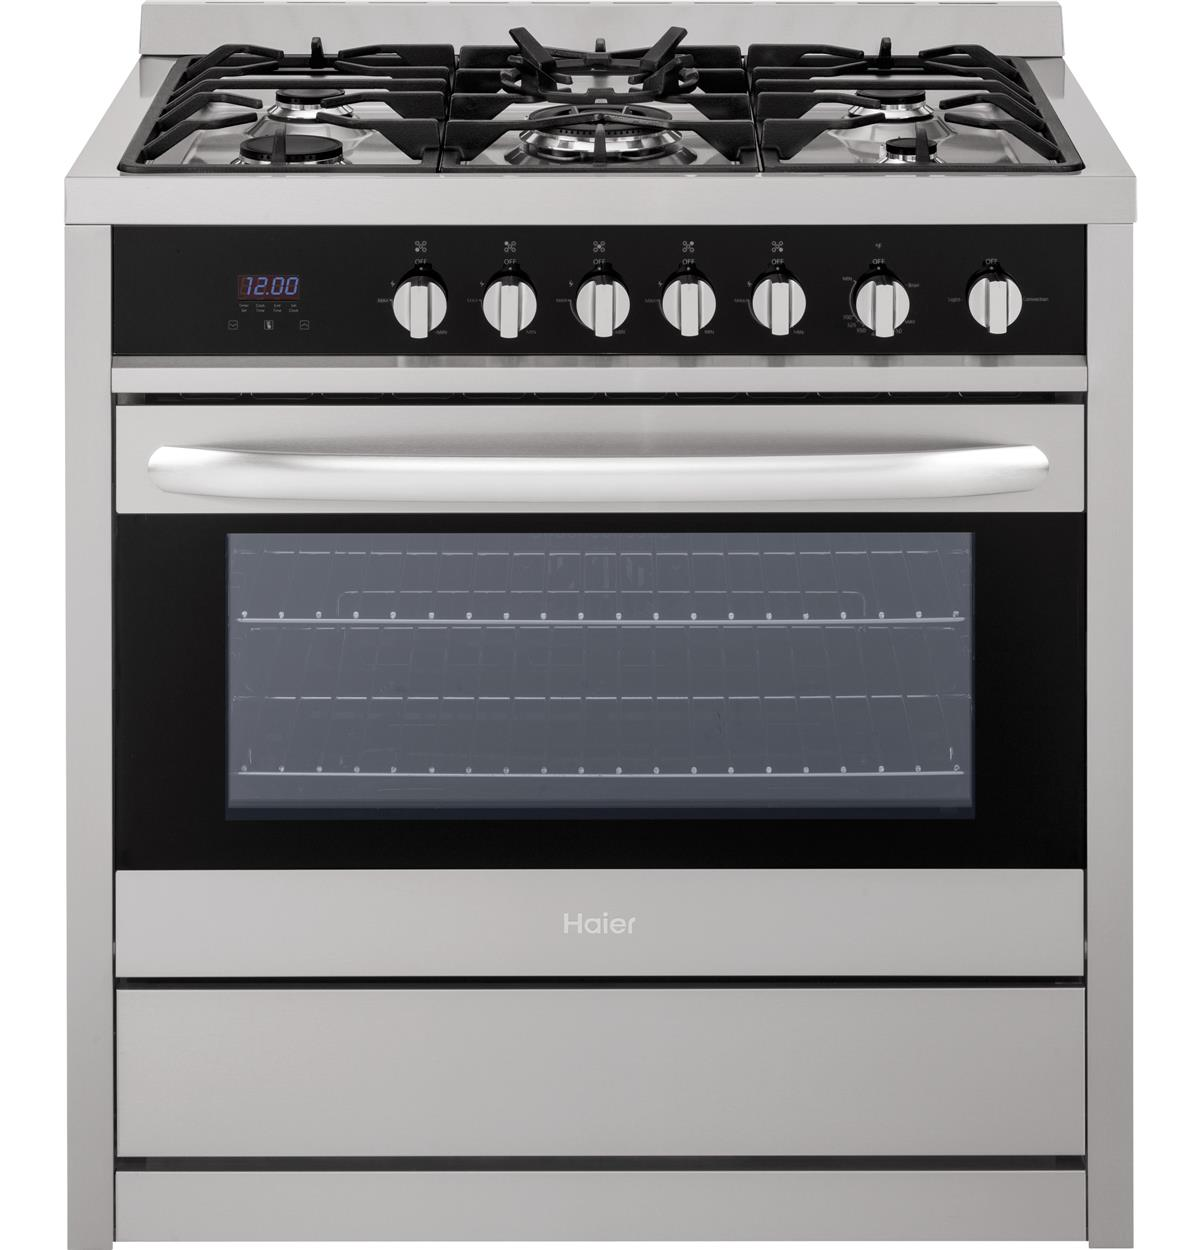 260683050b2 Haier Ranges - Free-Standing Electric, Gas & Dual Fuel Ranges